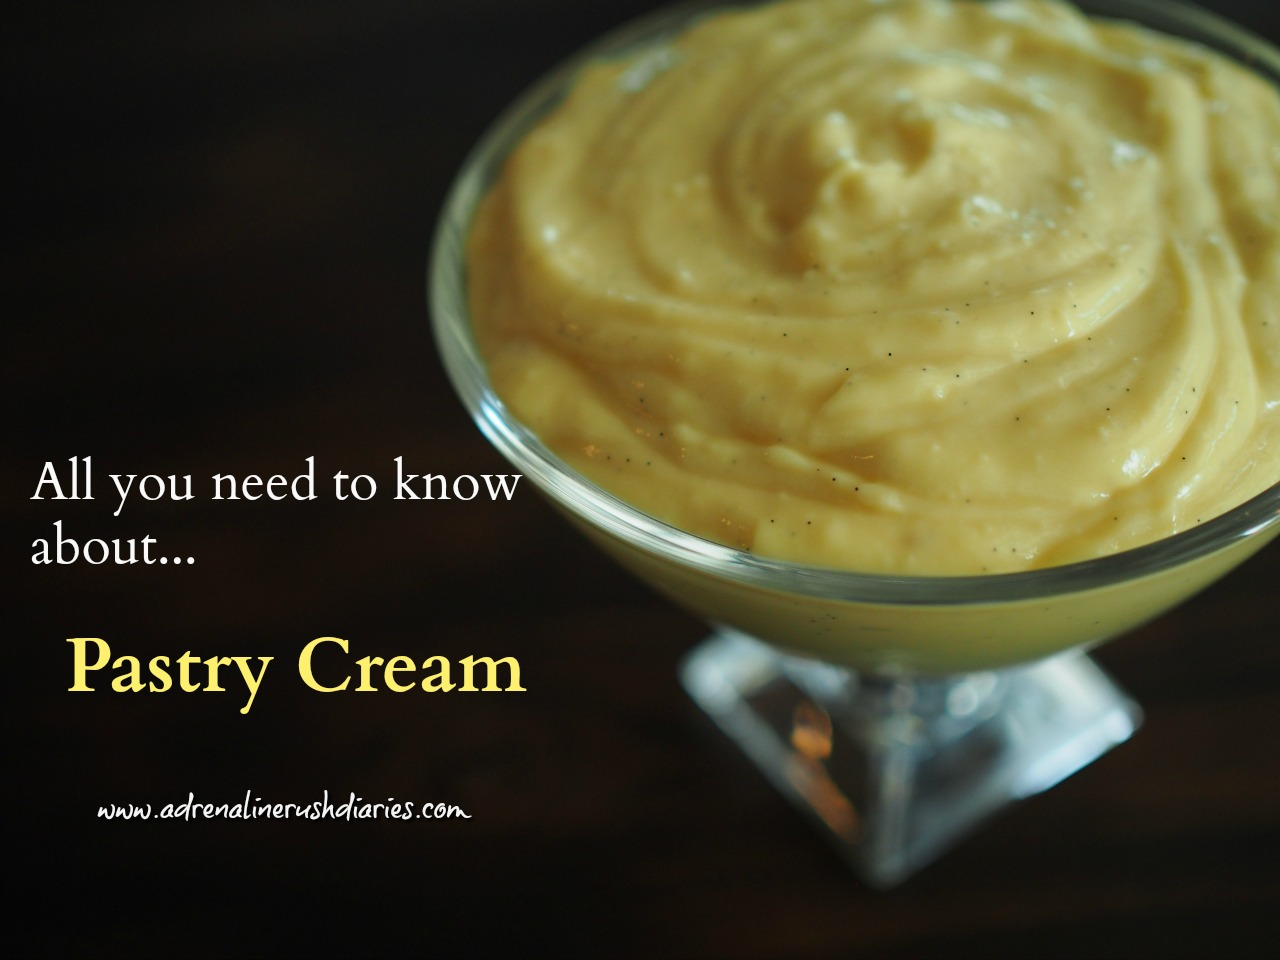 All you need to know about pastry cream and custard cream